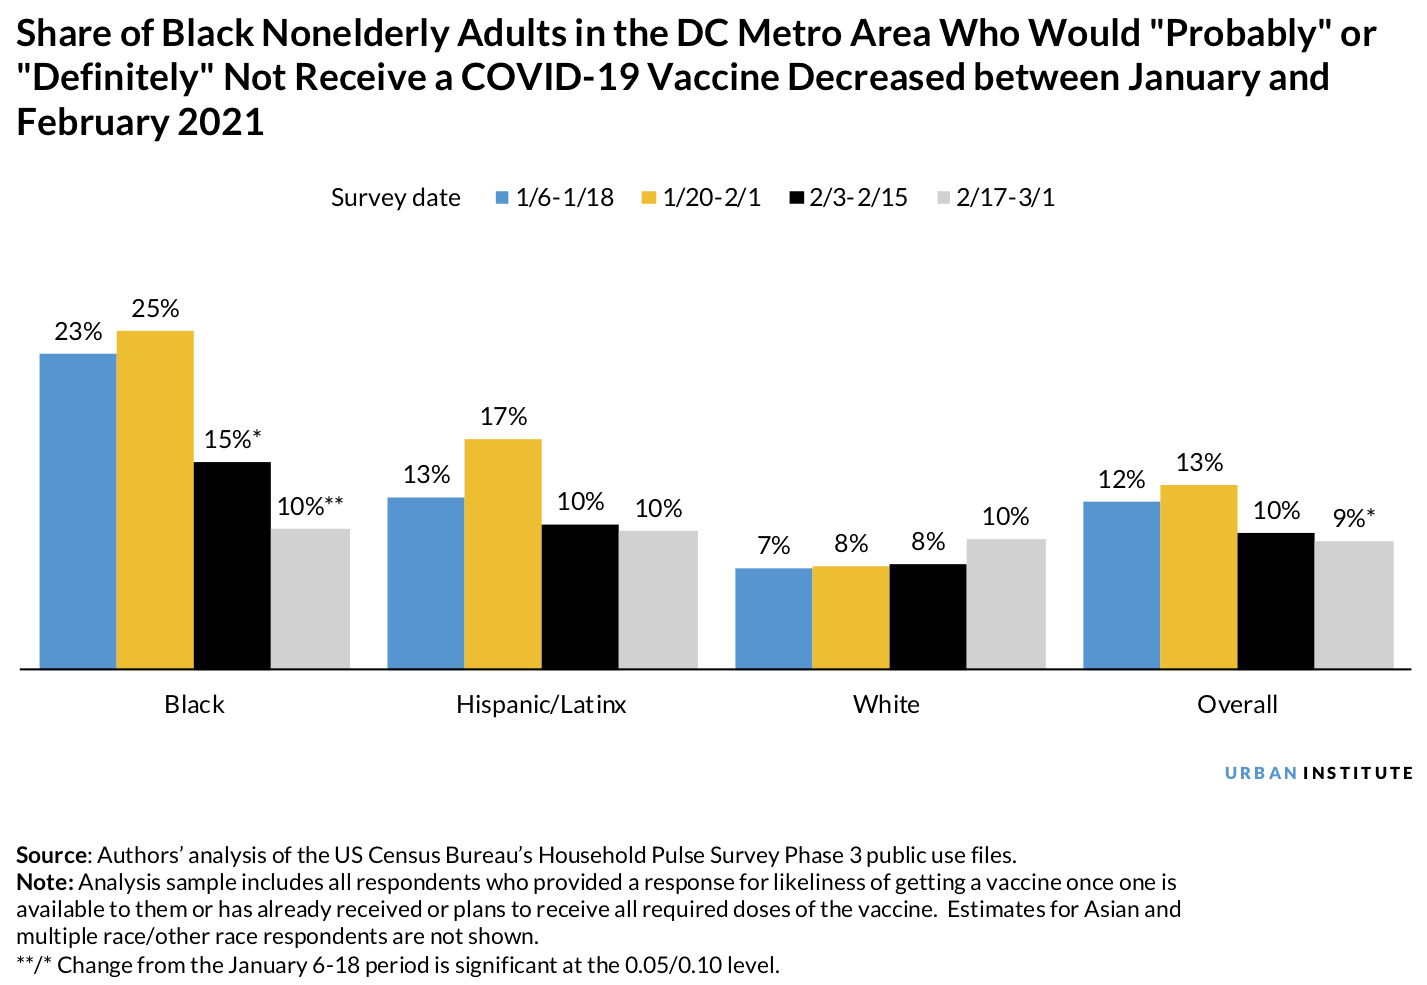 Bar chart showing the share of Black nonelderly adults in the DC metro area who would probably or definitely not receive a COVID-19 vaccine decreased between January and February 2021